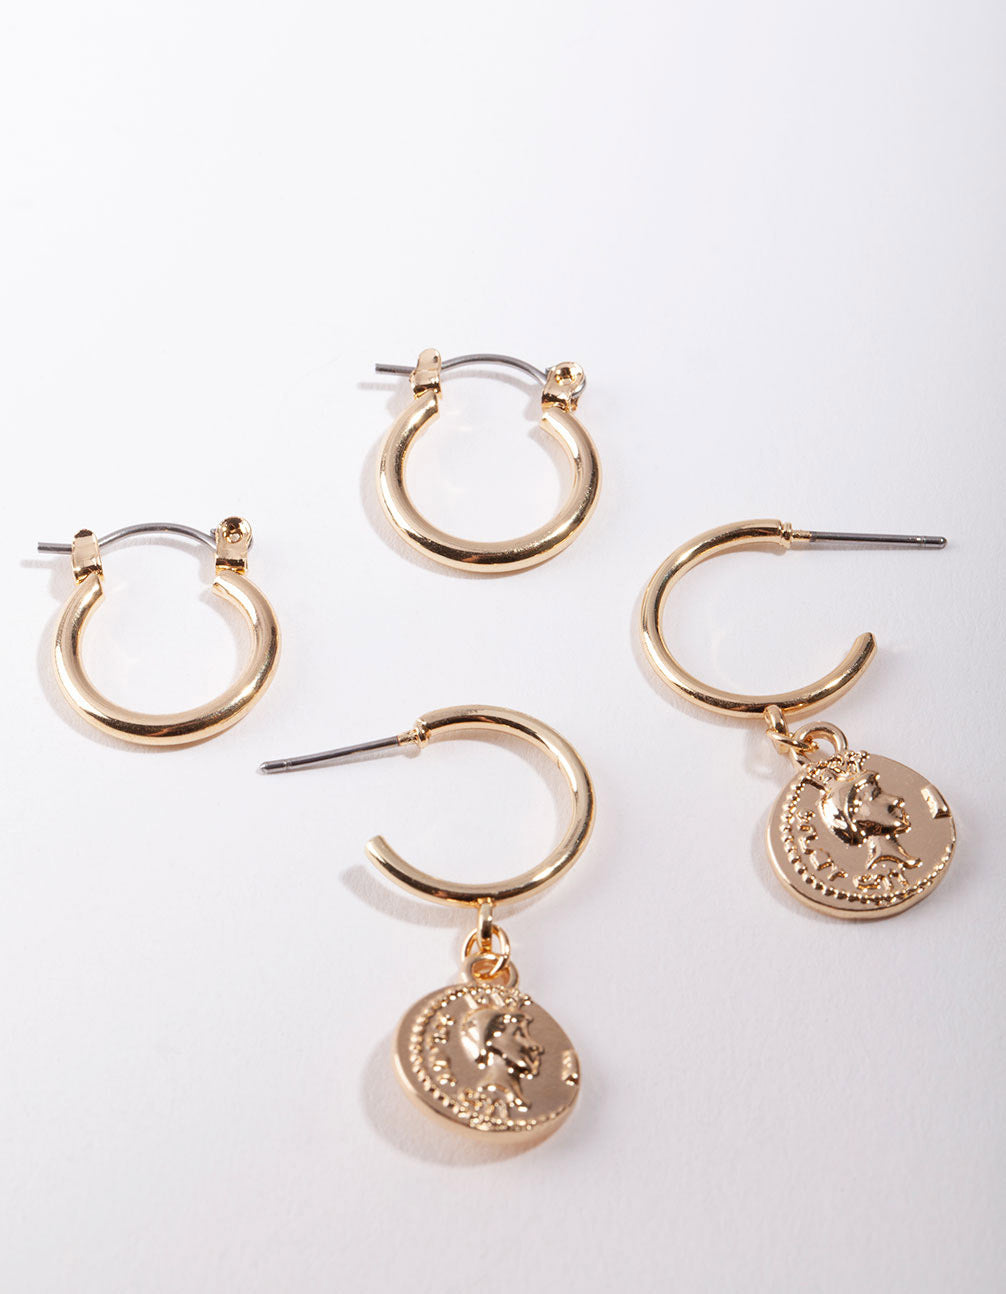 Shiny Gold Coin Charm Hoop Earring 2 Pack